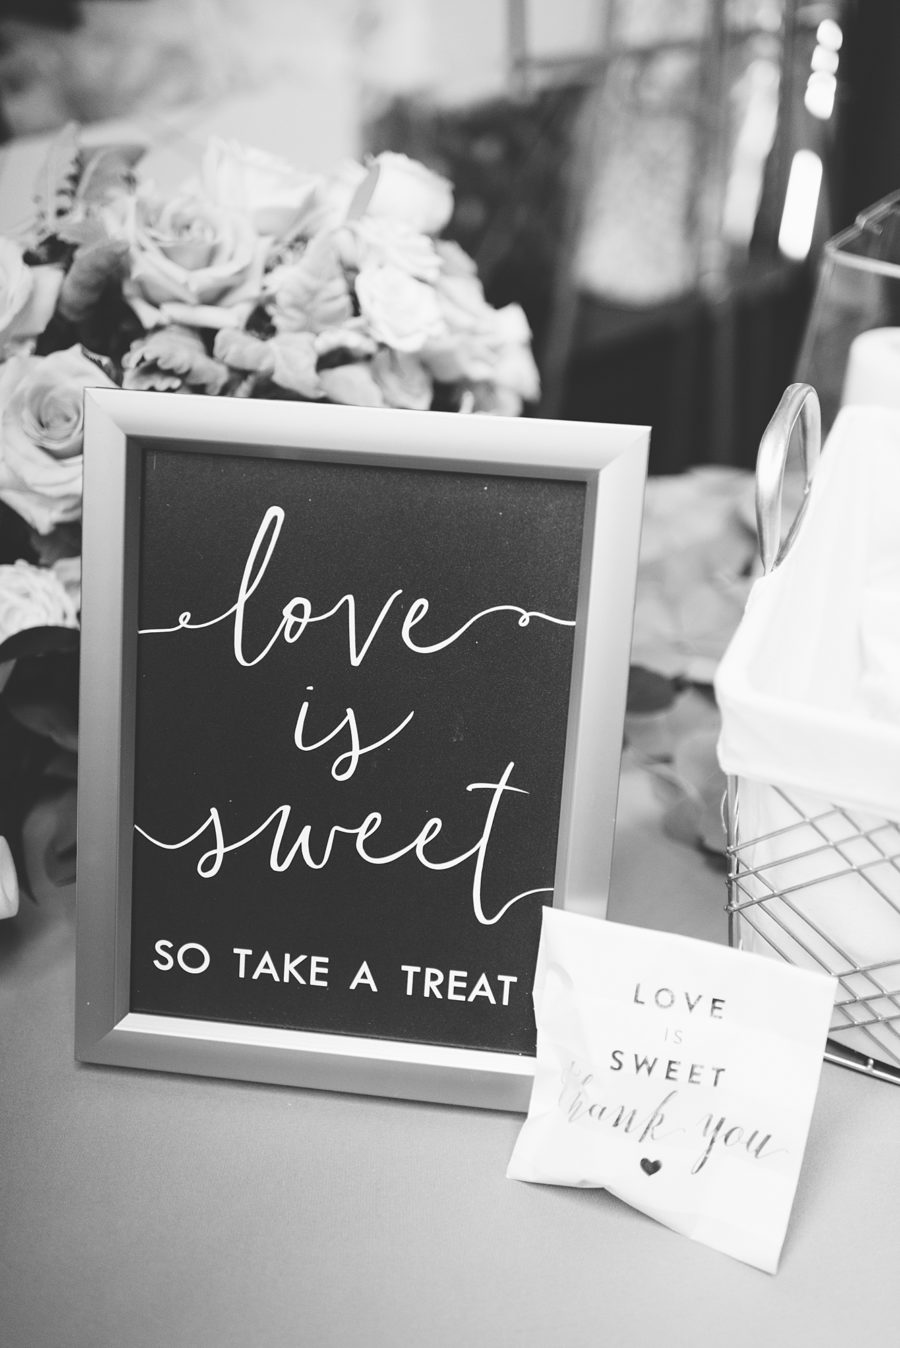 Wedding Dessert Sign: Modern and Southern Wedding at the Clementine featured on Nashville Bride Guide